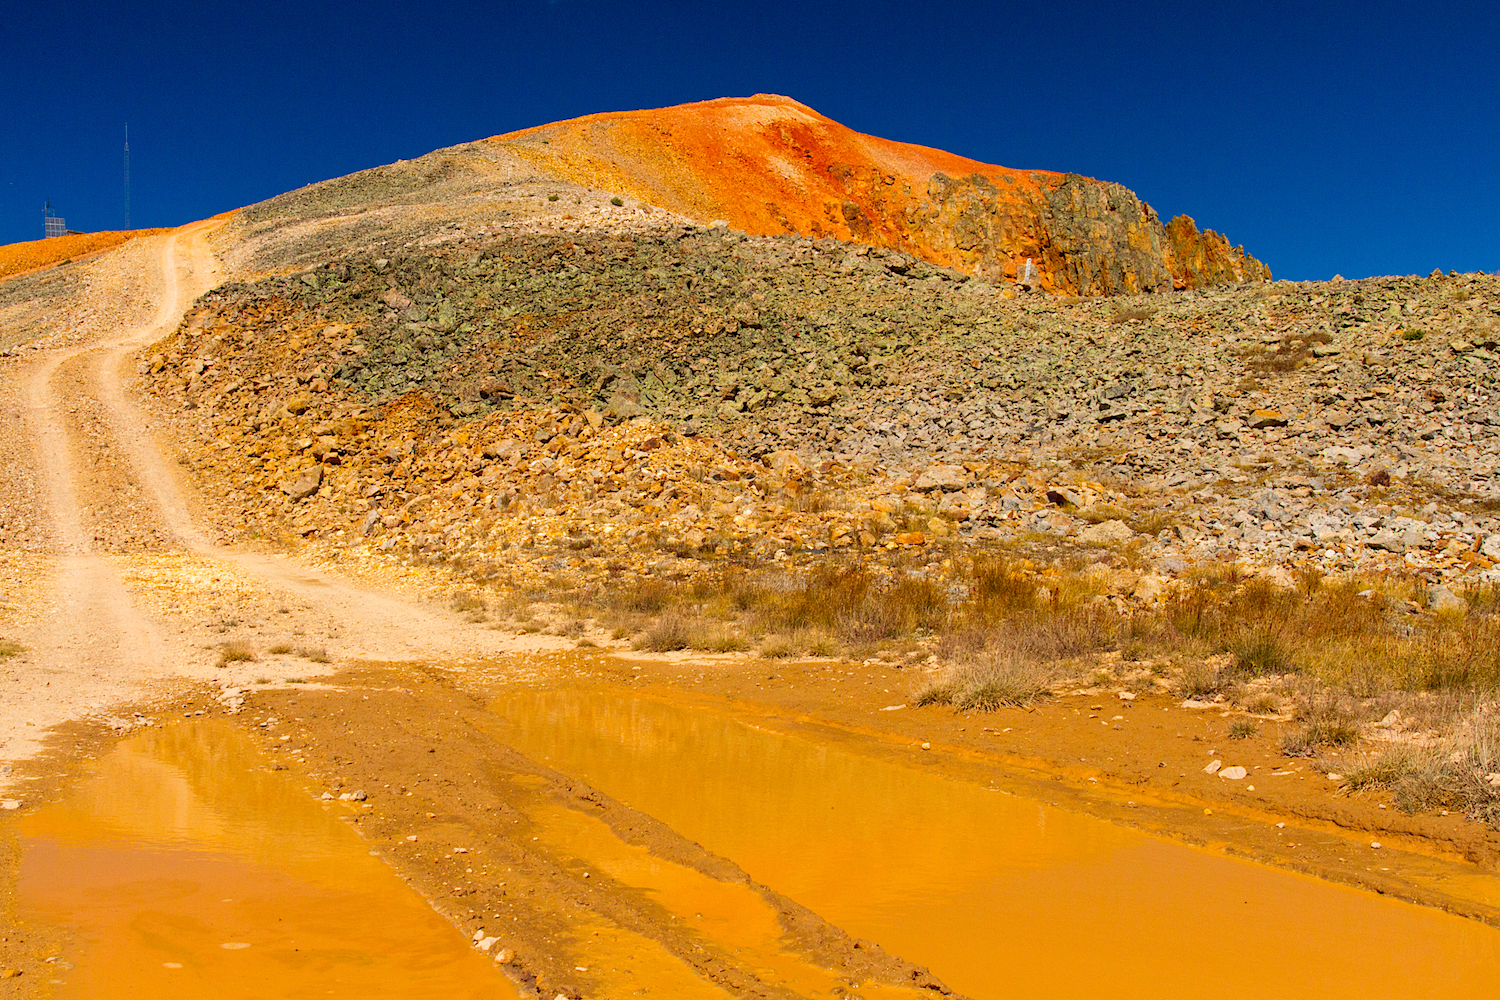 Red Mountain #3, Image # 6118